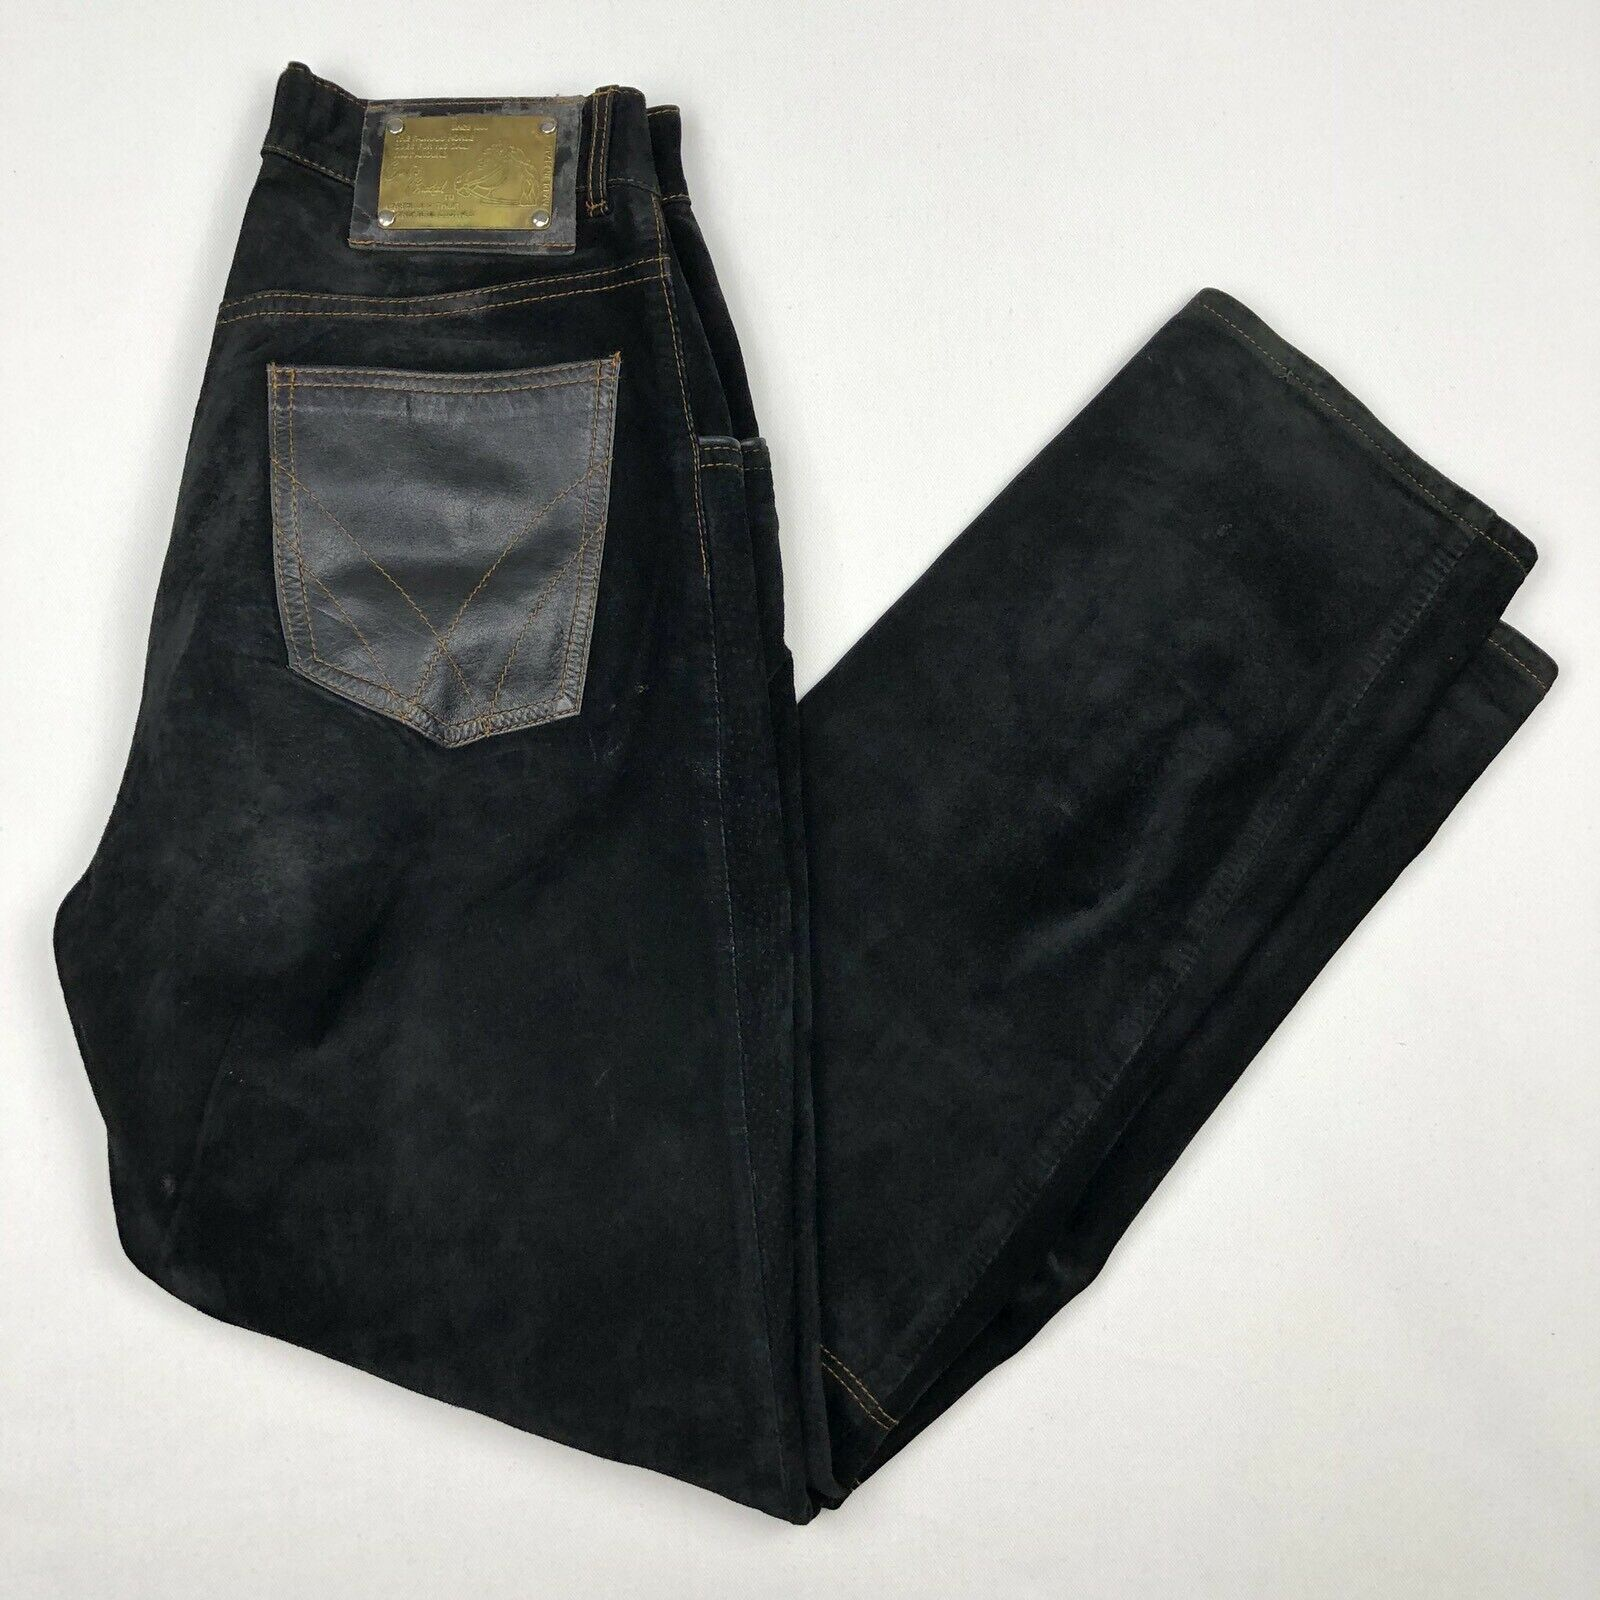 Centro Ciudad Leather Suede Equestrian Riding Pants • RARE  • Spain • Size 38  we take customers as our god